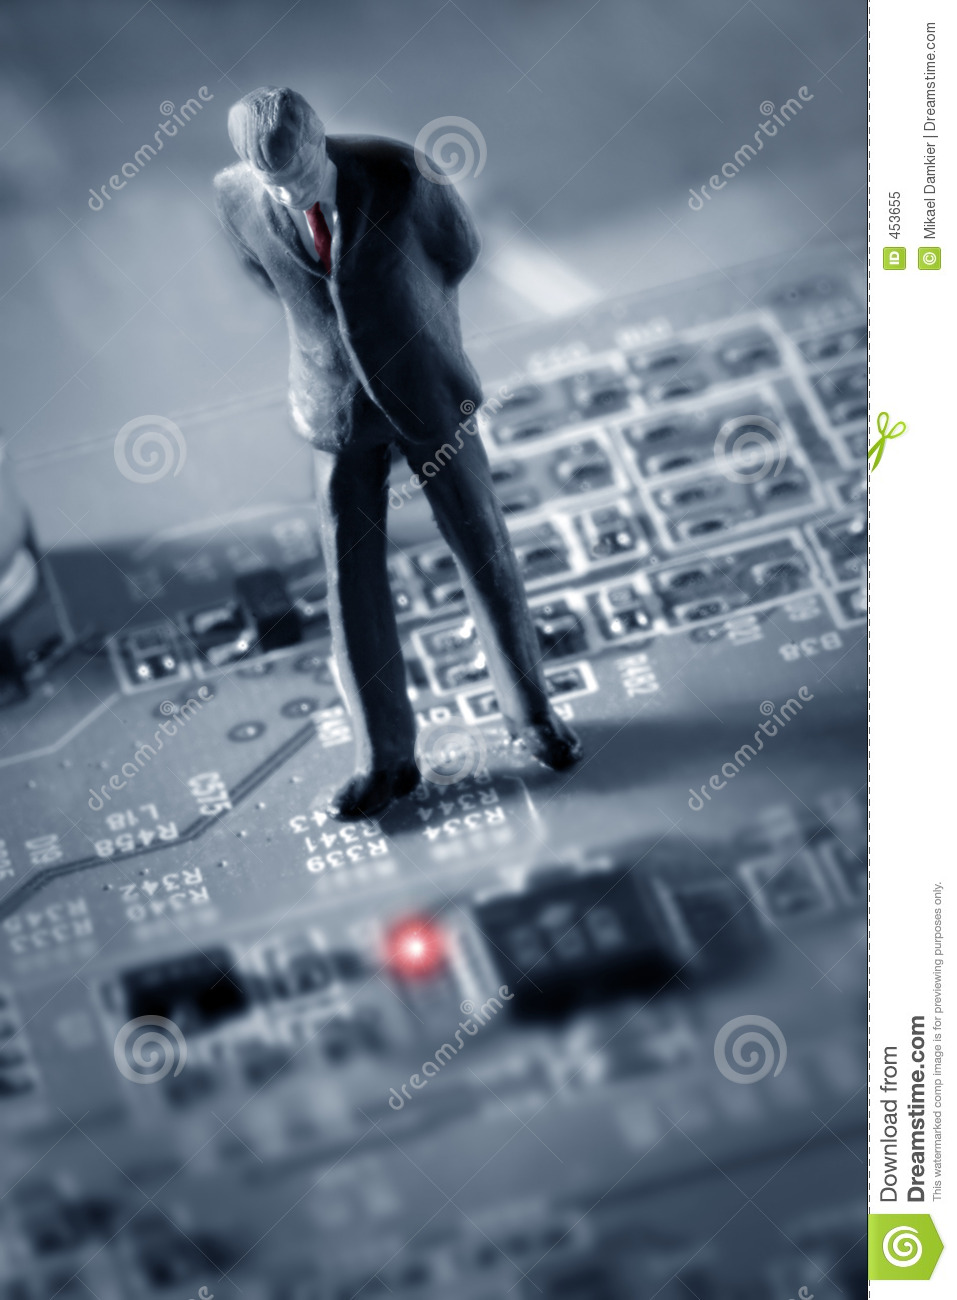 Businessman looking at a Red light